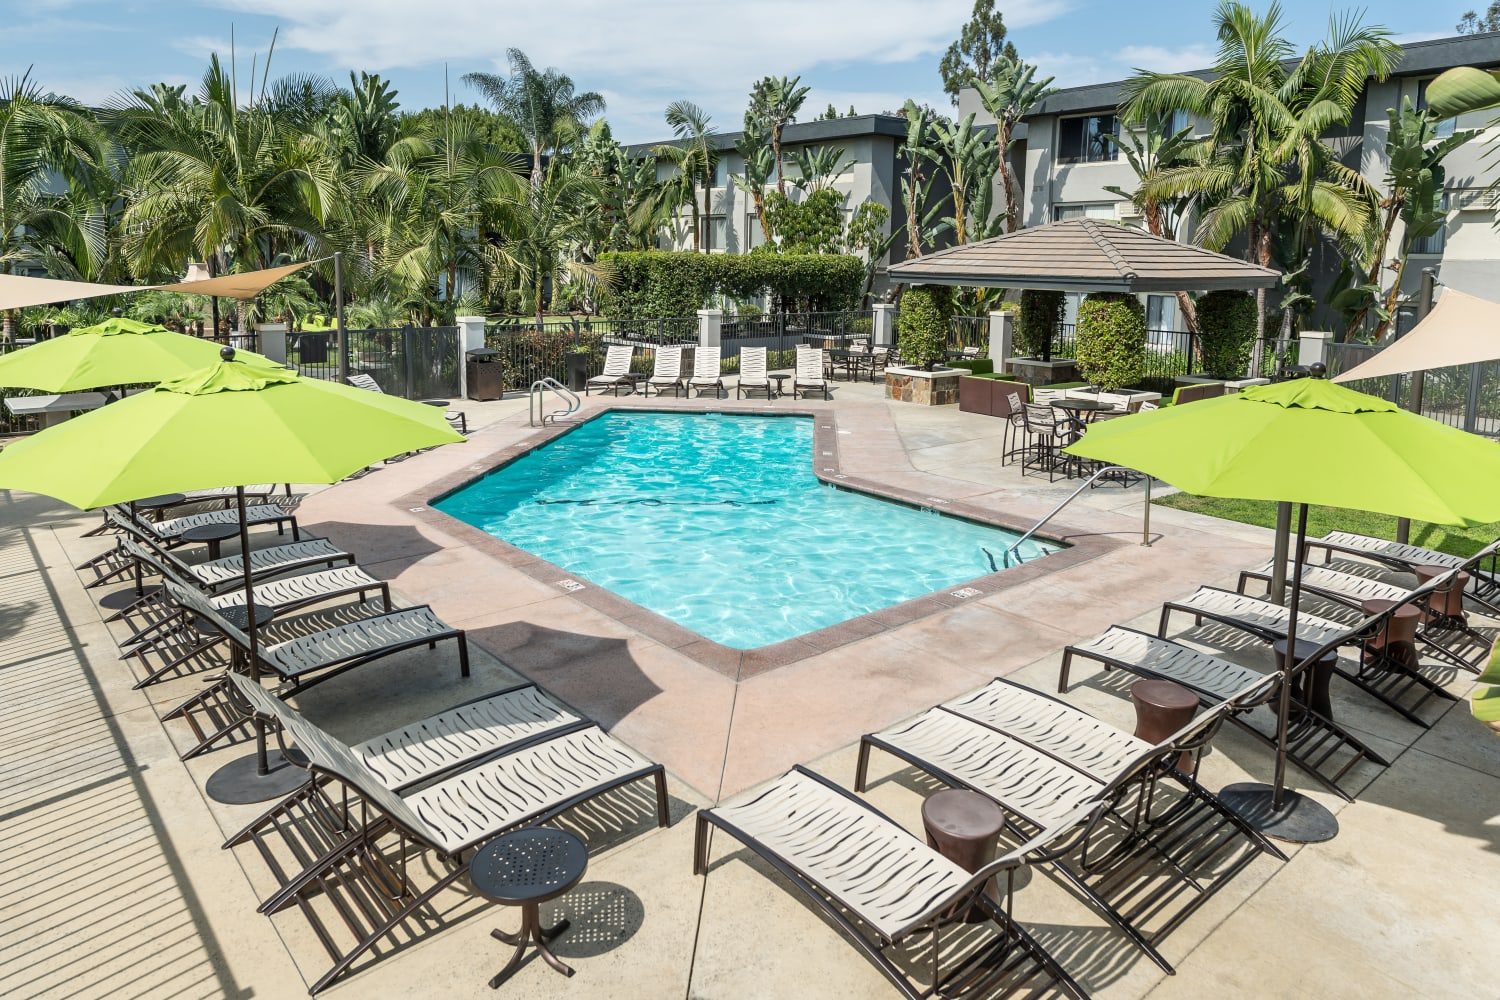 Enjoy apartments with a swimming pool at UCE Apartment Homes in Fullerton, California